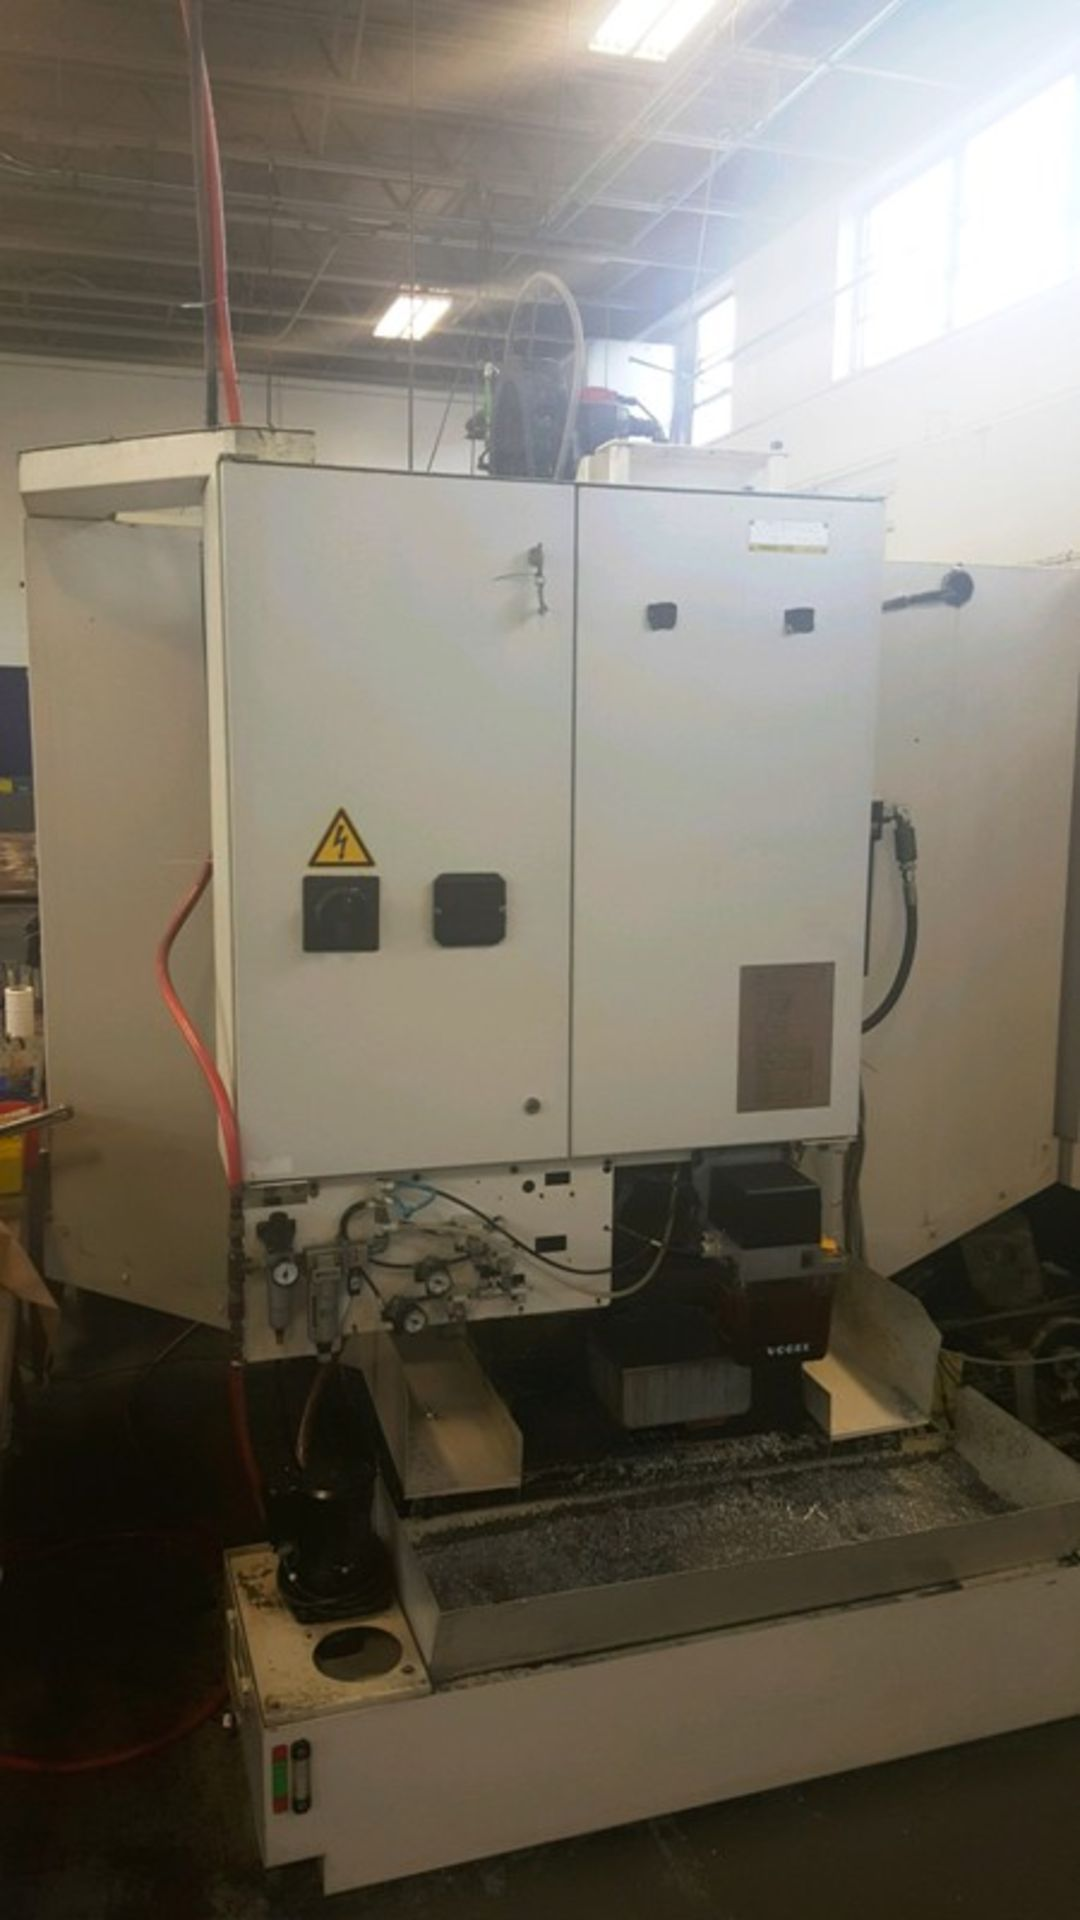 Lot 10 - Fanuc Robodrill T21iDL 5-Axis Vertical Drilling & Tapping Center (Located in Claremont, NH)